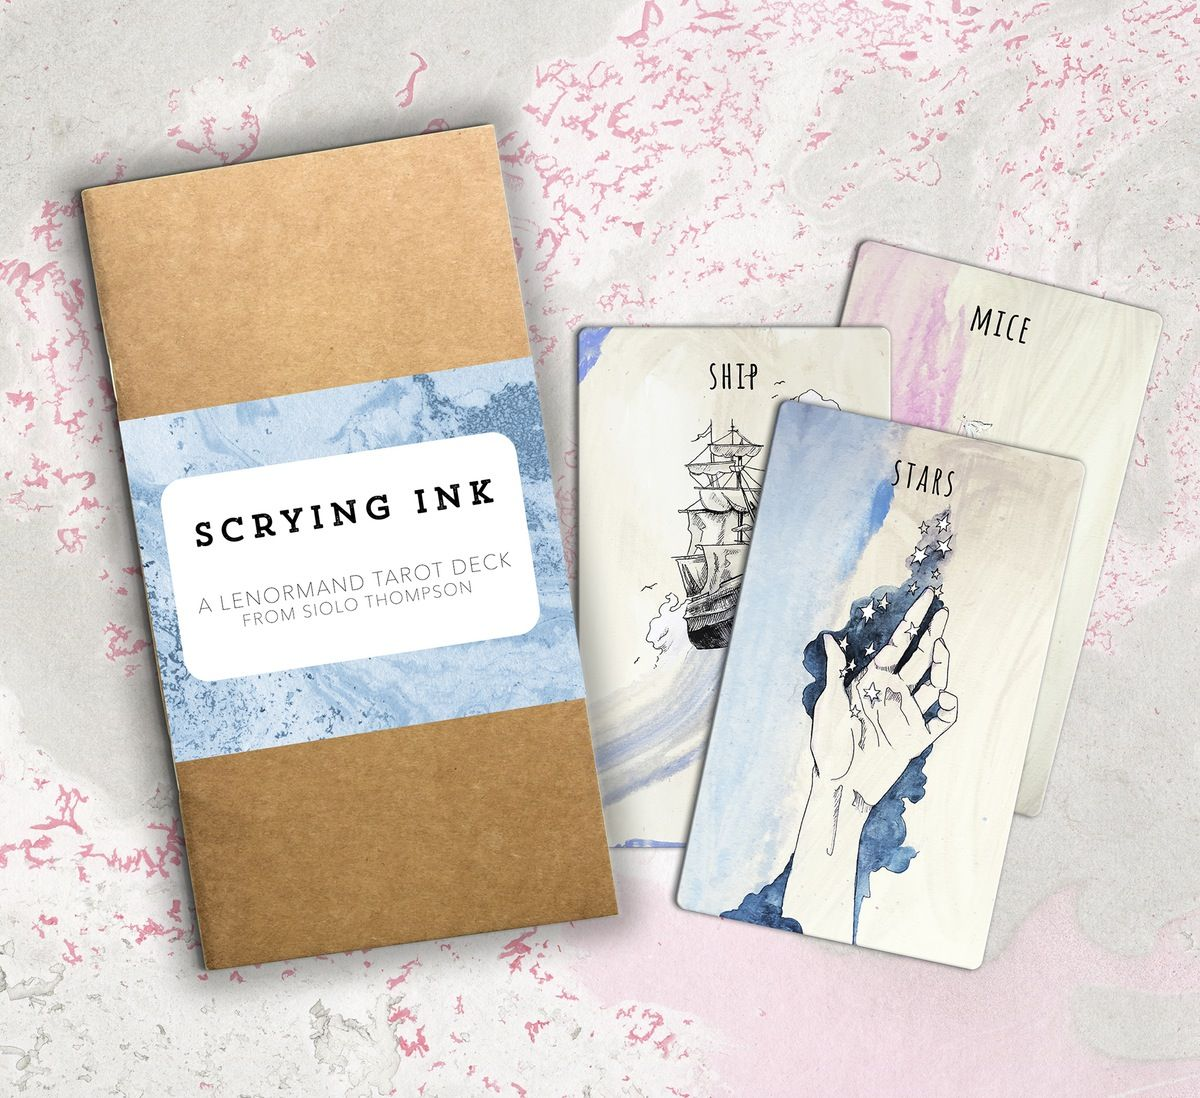 Siolo Thompson, the artist who created The Linestrider Tarot deck, is releasing an indie run of her Lenormand deck, Scrying Ink, in August! You can pre-order it now. She said that the decks will be signed and numbered as the first edition. I love my Linestrider deck so I'm super excited for Scrying Ink.